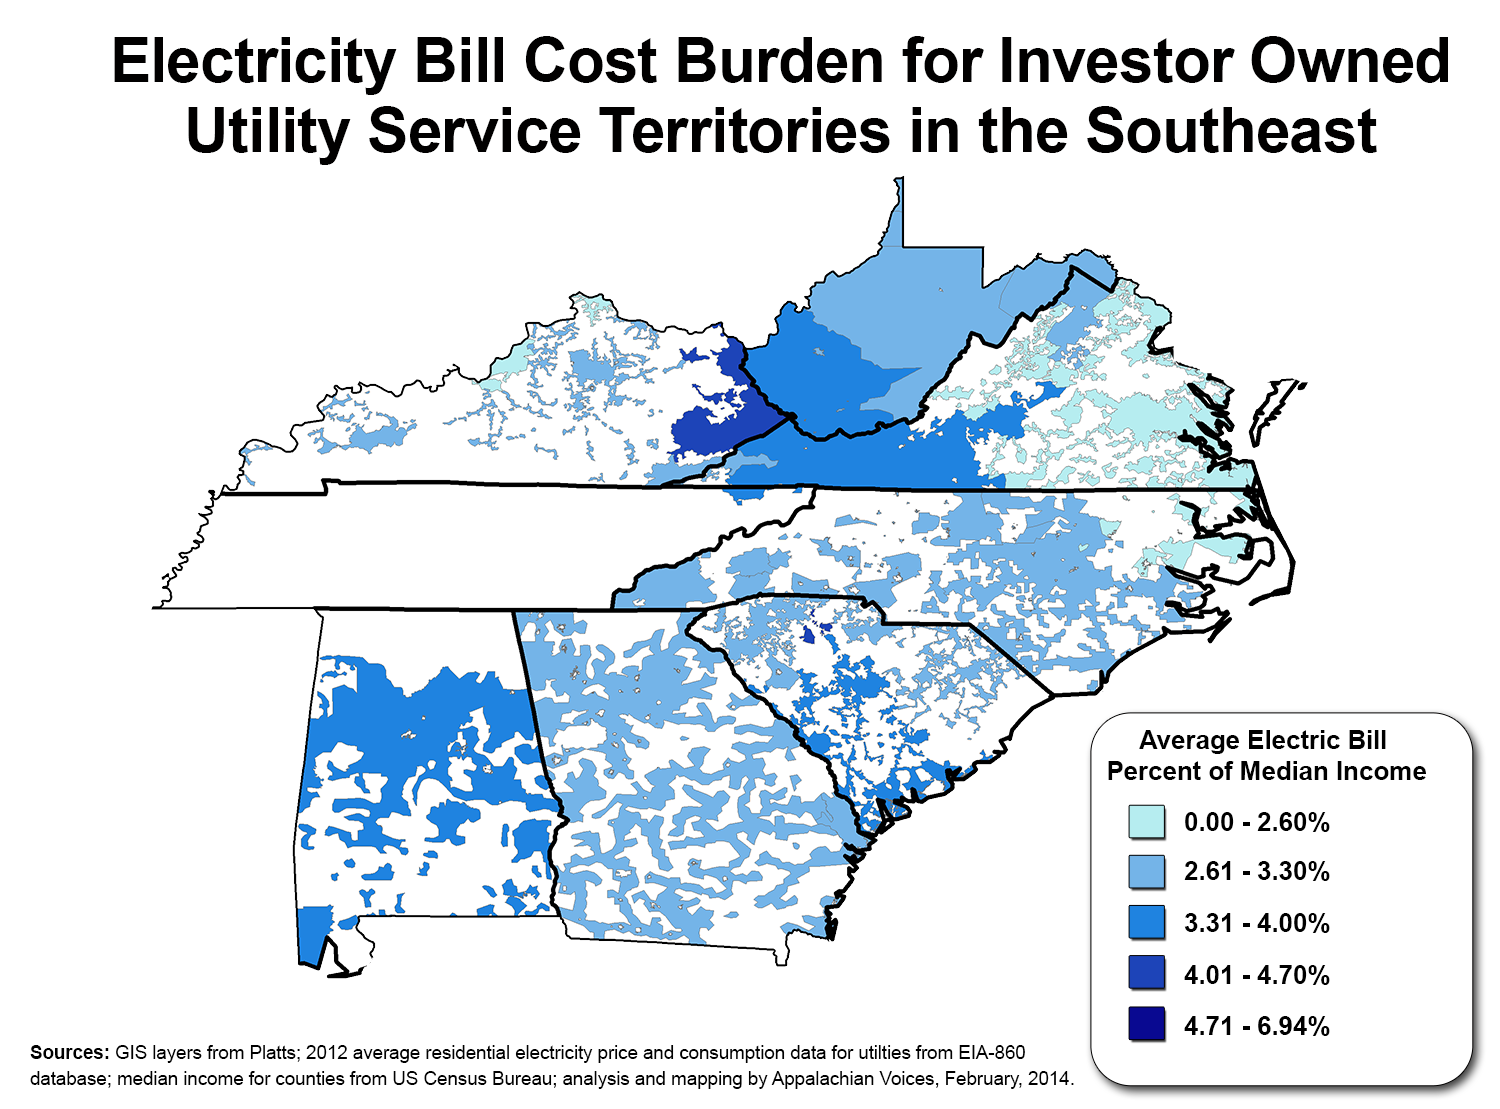 Google Features Map Of Poverty And Electricity Costs In The South As - Us-electric-utility-map